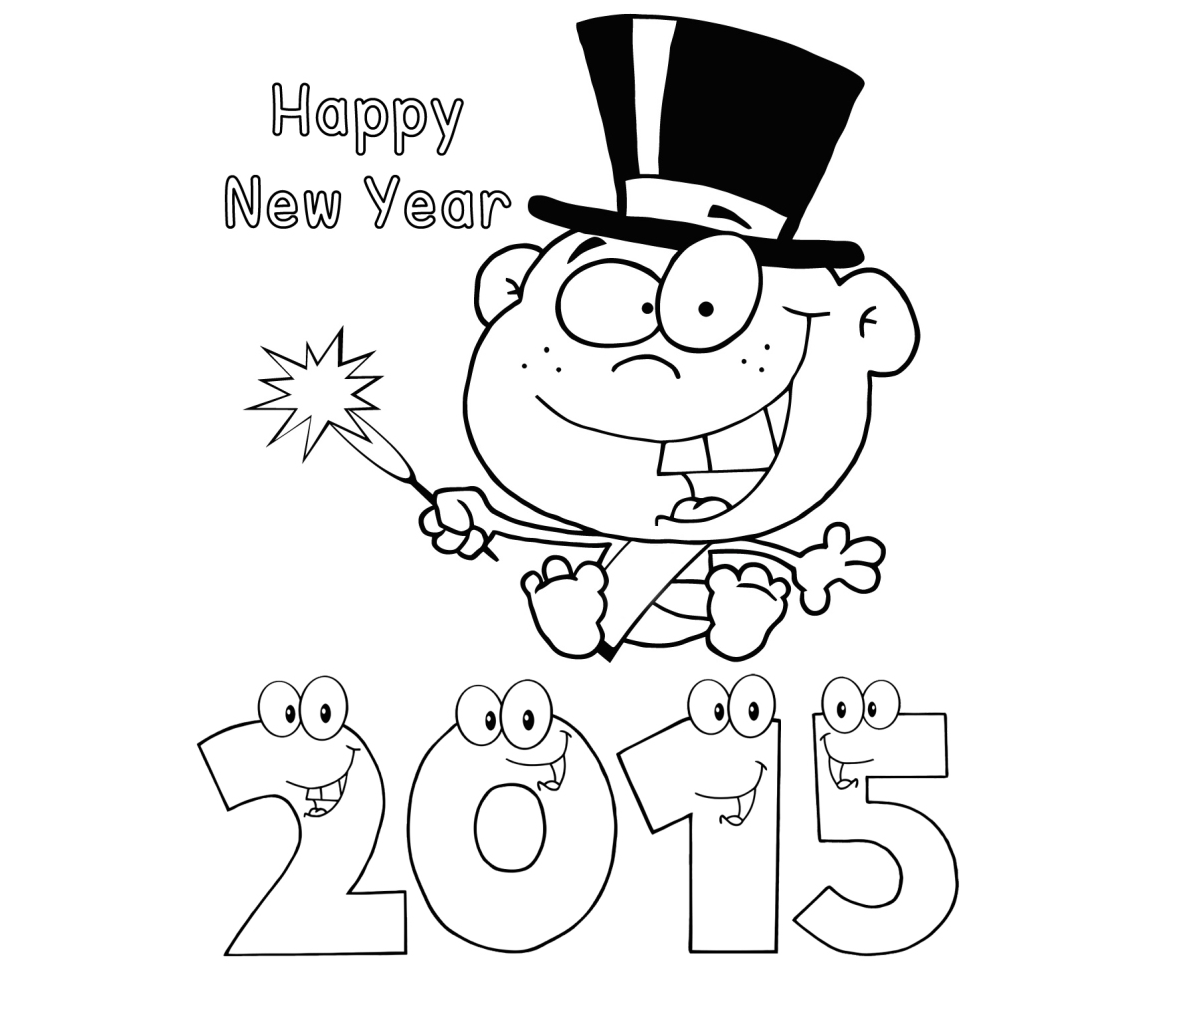 Happy New Year 2015 Coloring Drawing Free wallpaper